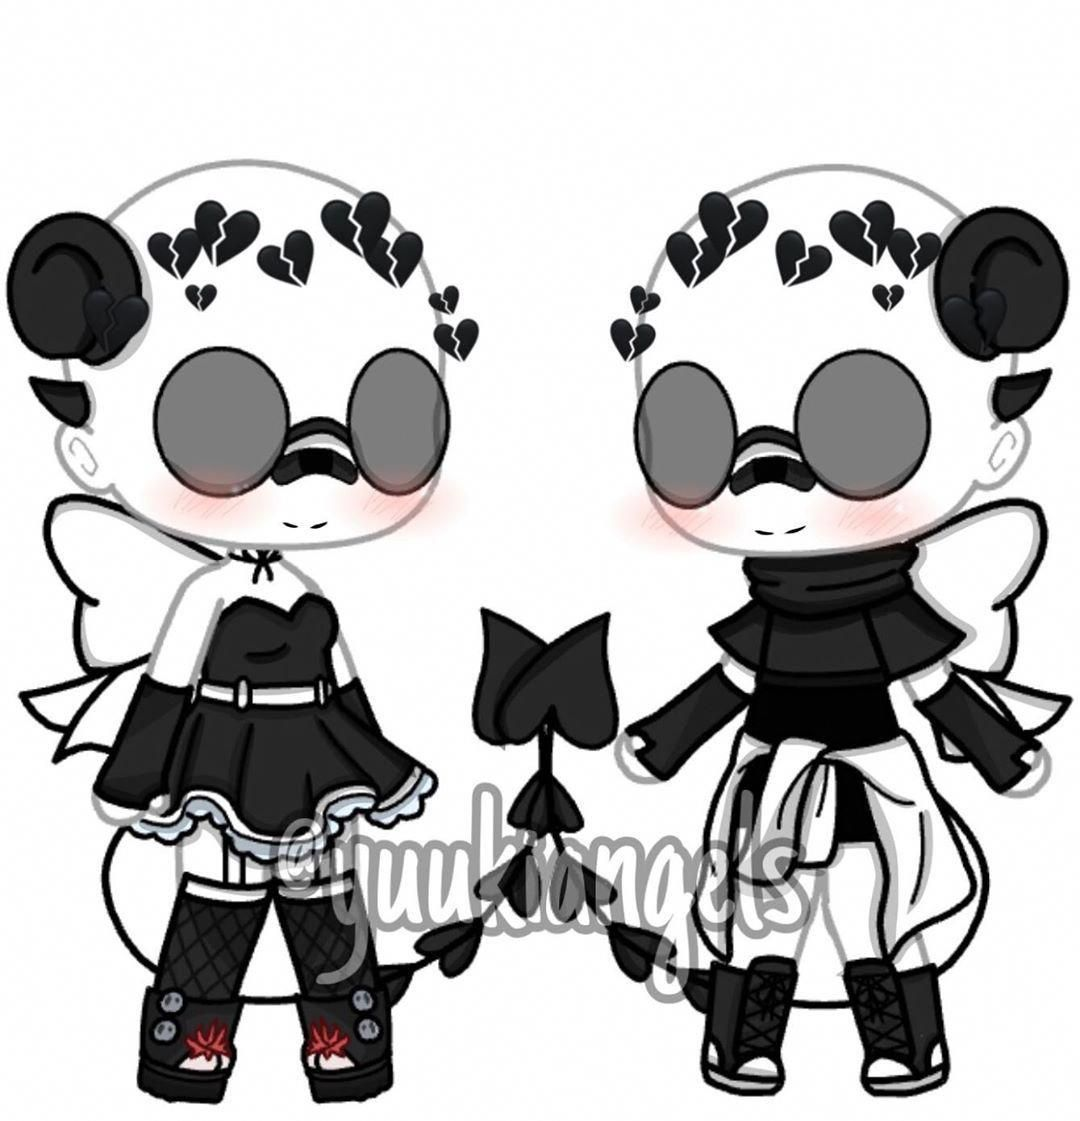 Demon Outfits Tbh Idk Lmao The Colors Is Black And White I Hope